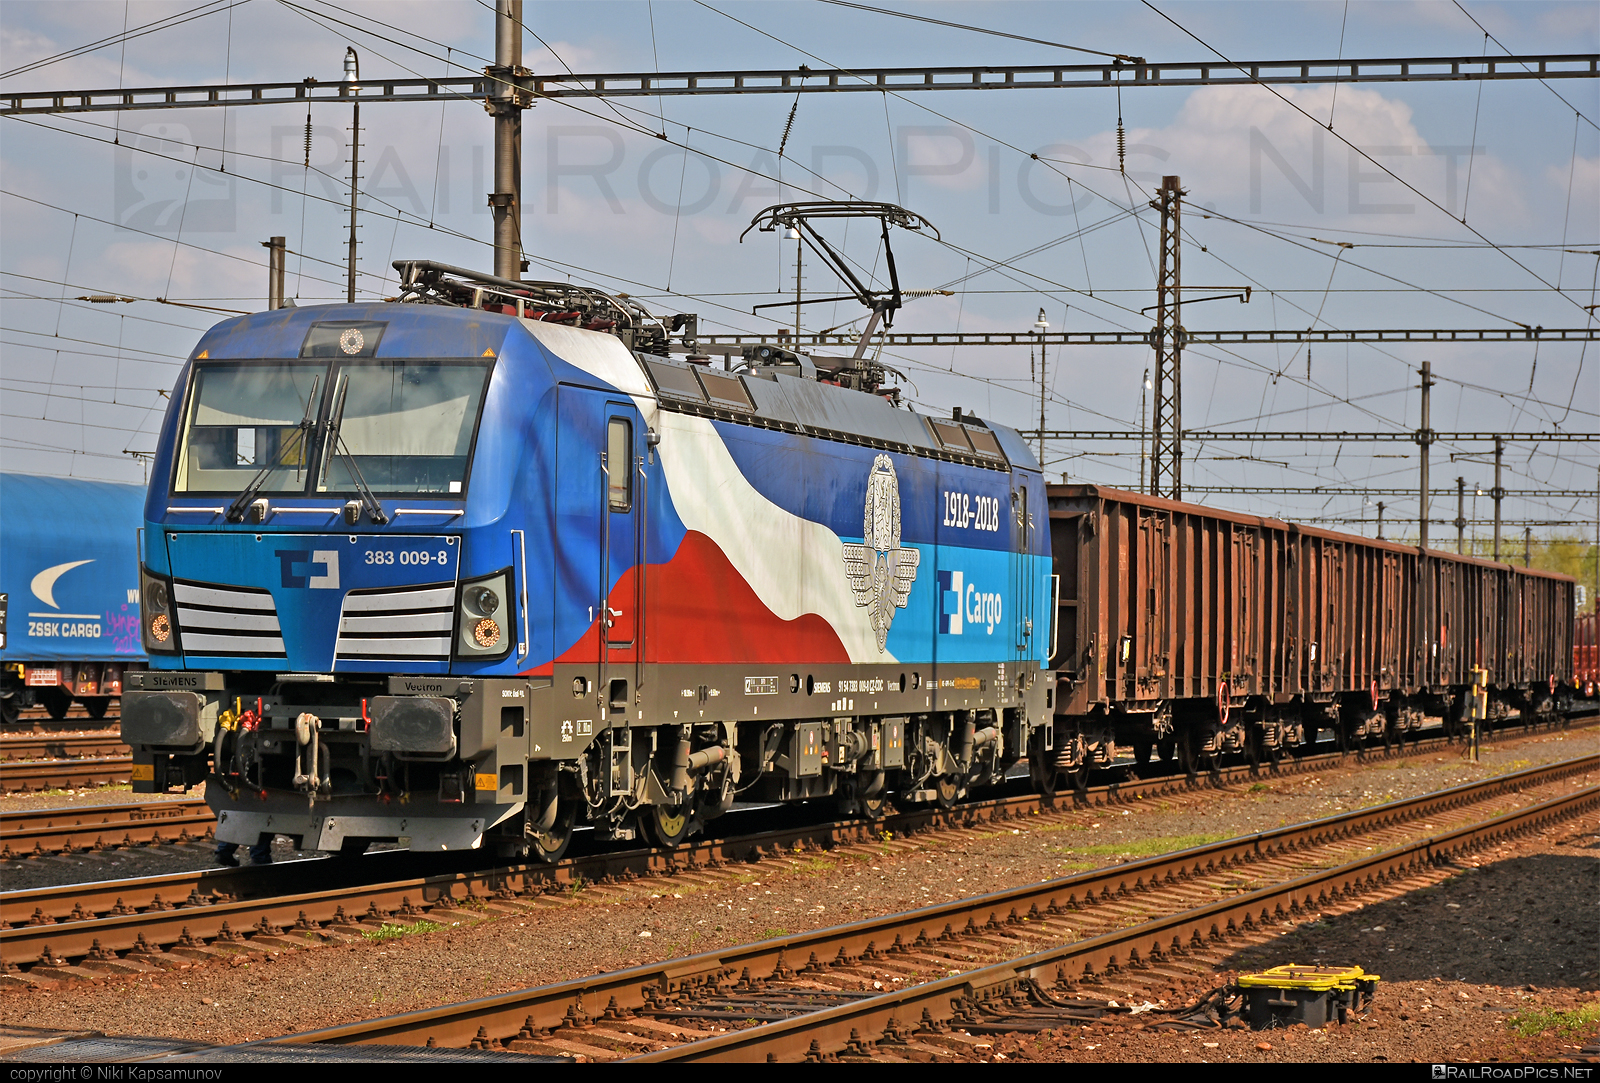 Siemens Vectron MS - 383 009-8 operated by ČD Cargo, a.s. #cdcargo #siemens #siemensvectron #siemensvectronms #vectron #vectronms